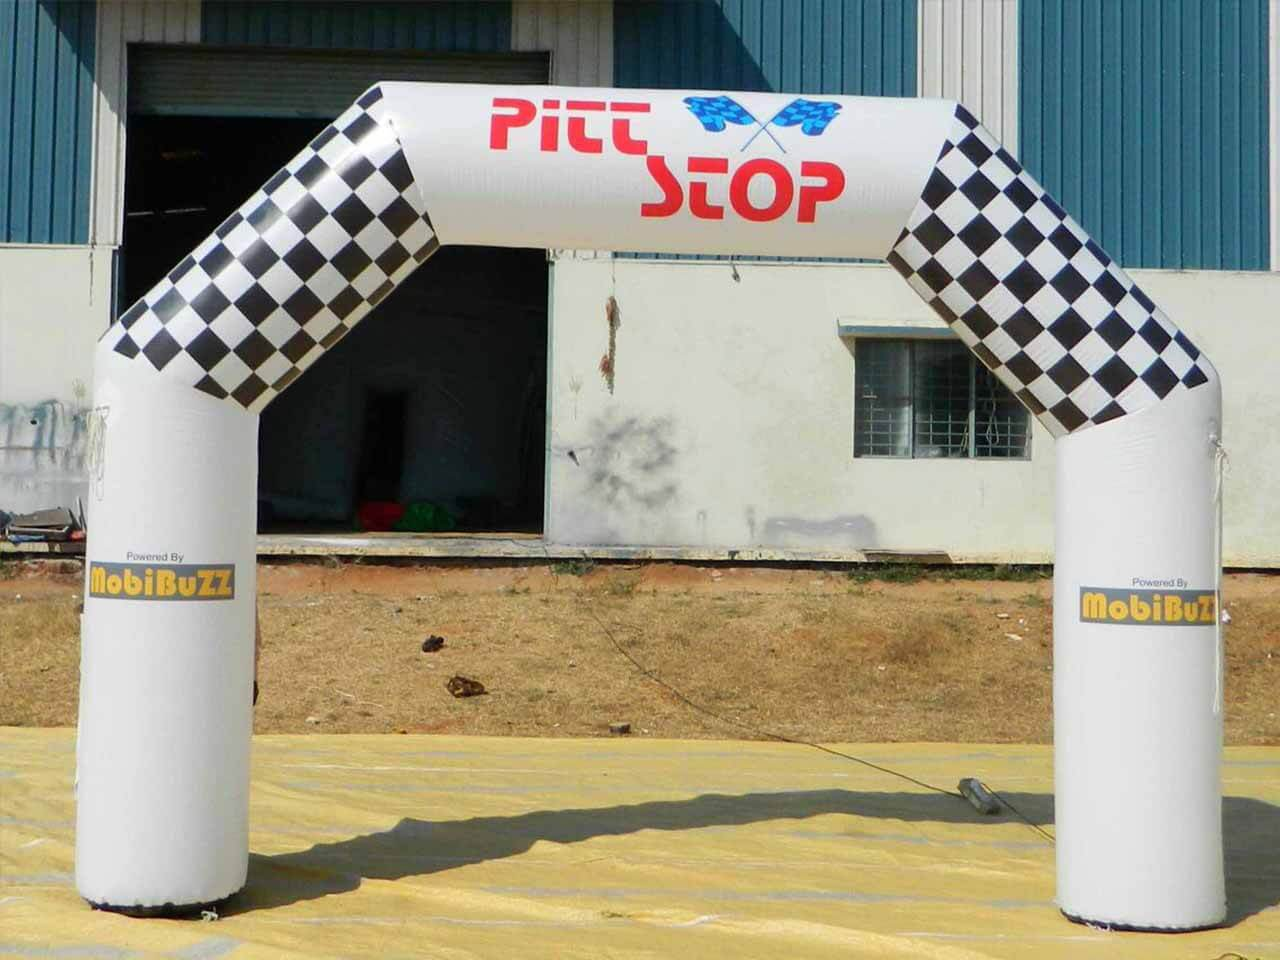 inflatable-tent-pit-stop